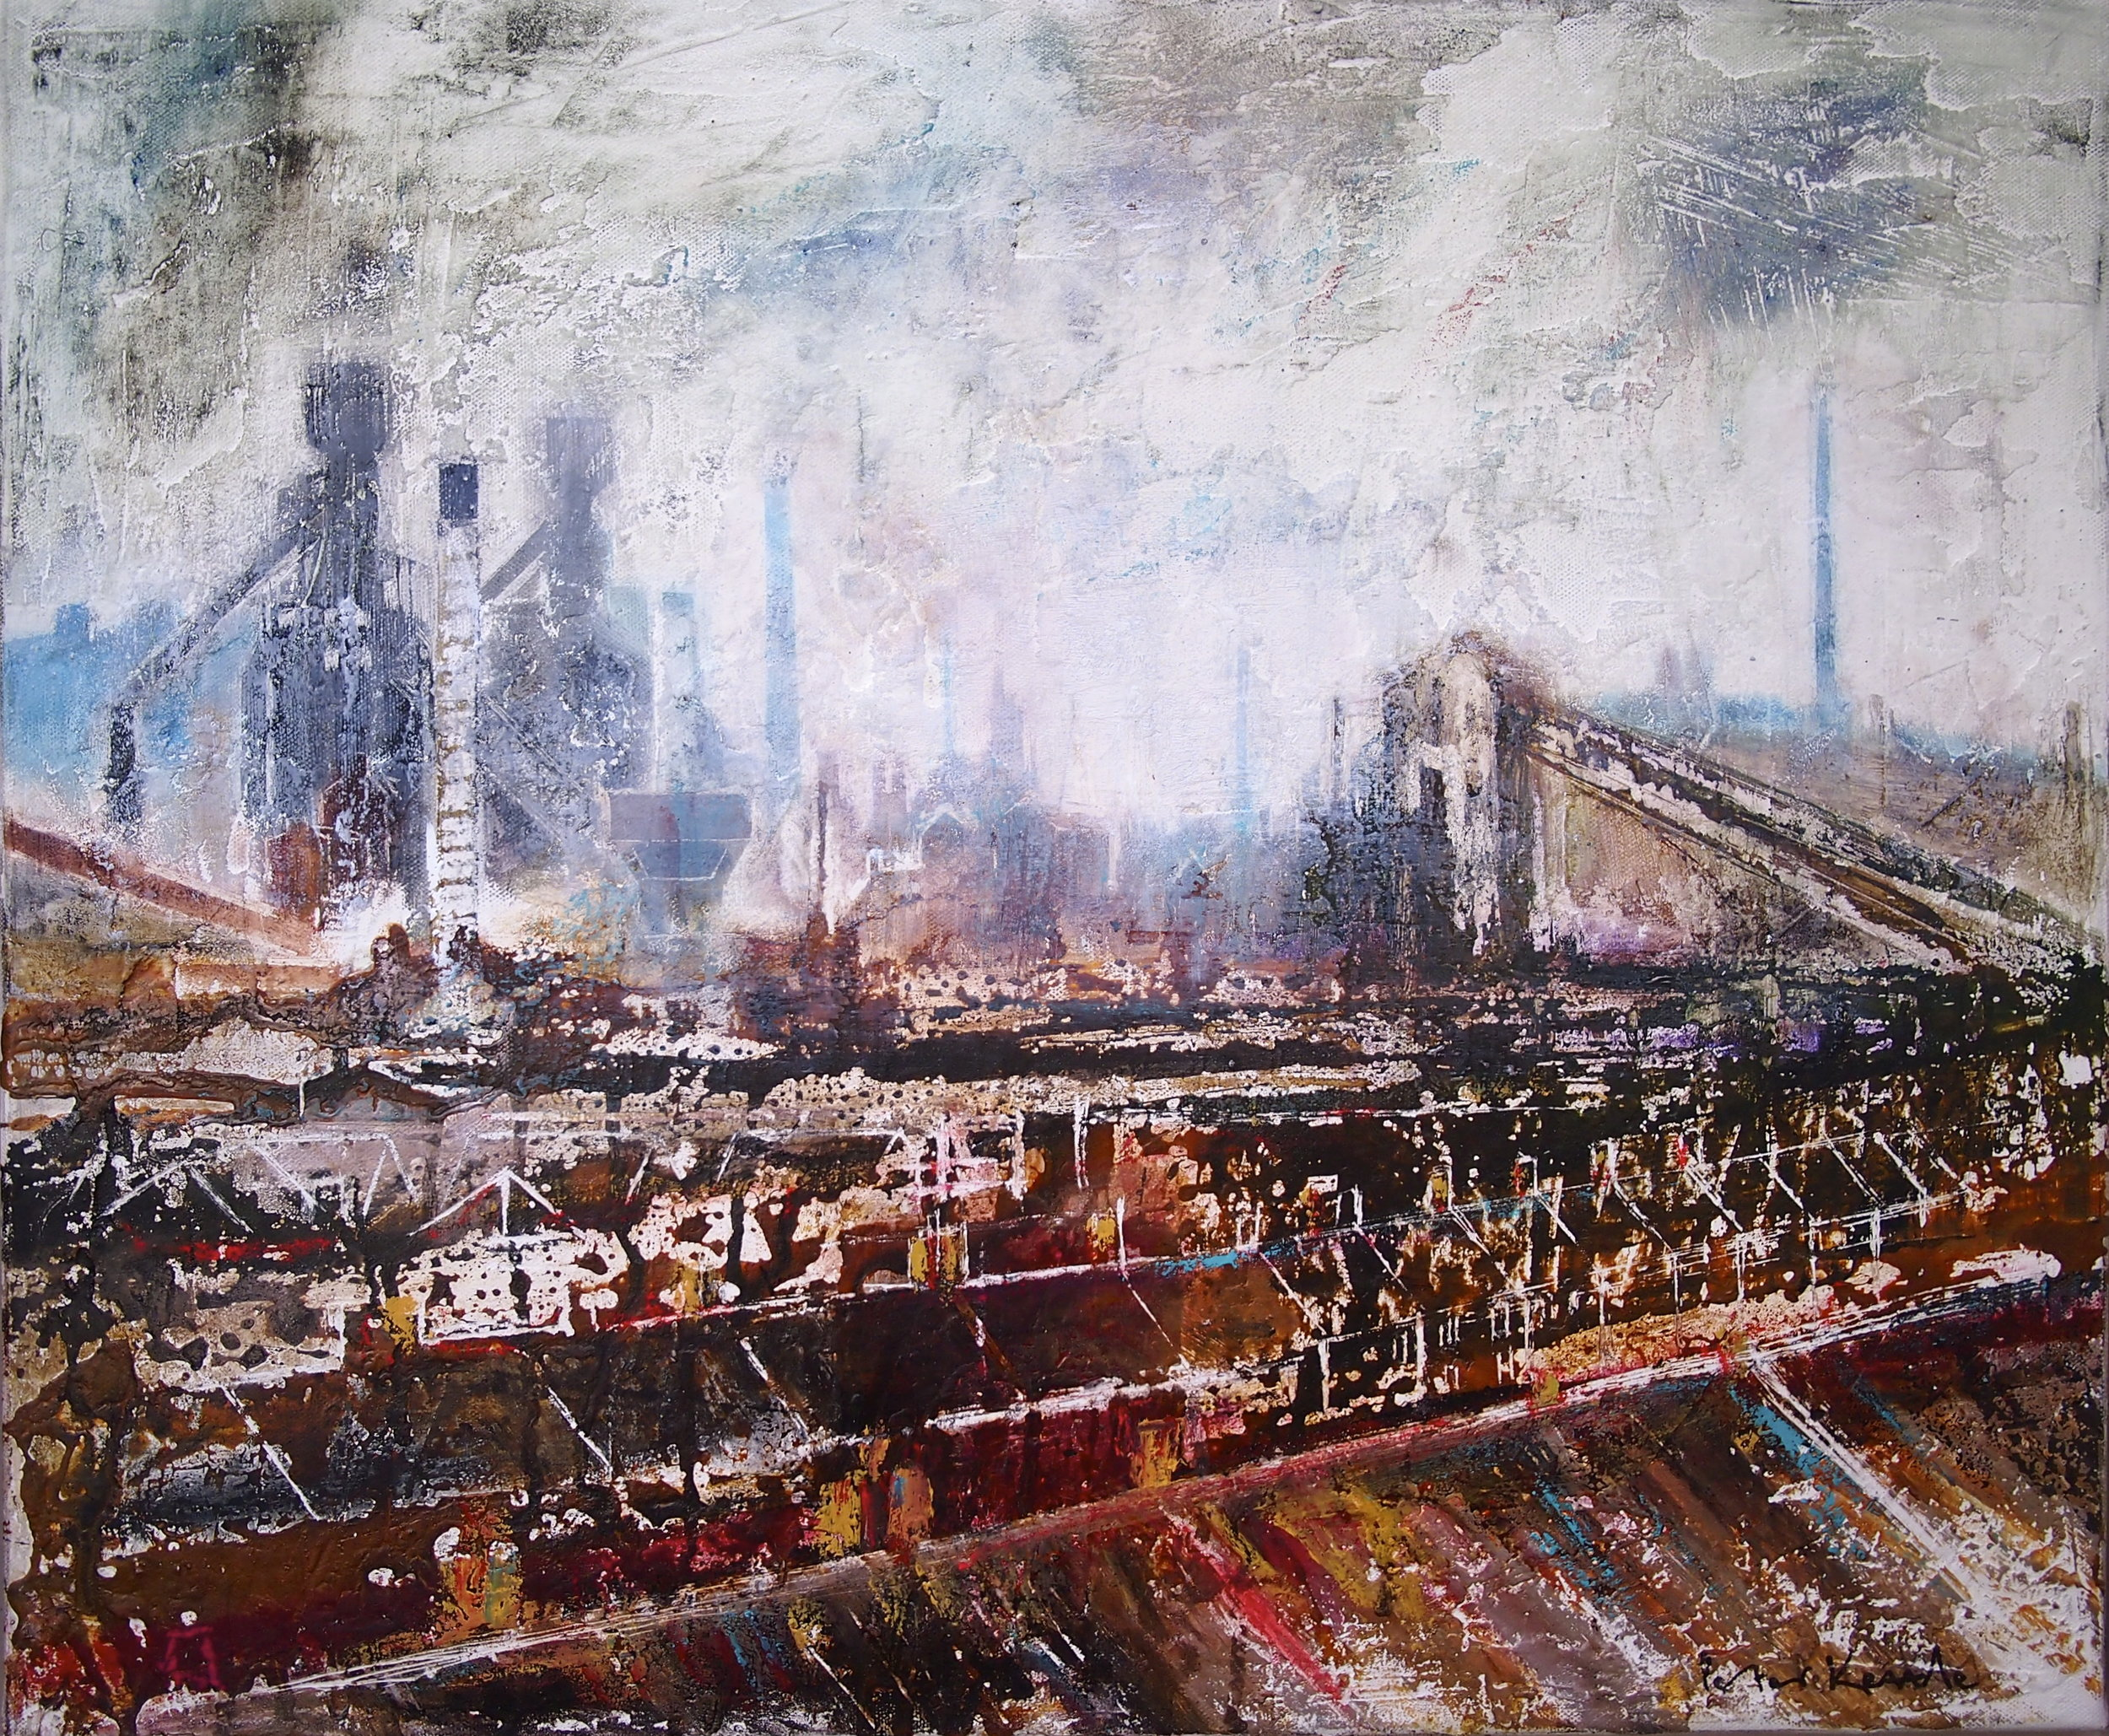 Chimneys - Port Talbot 50 x 60 cm